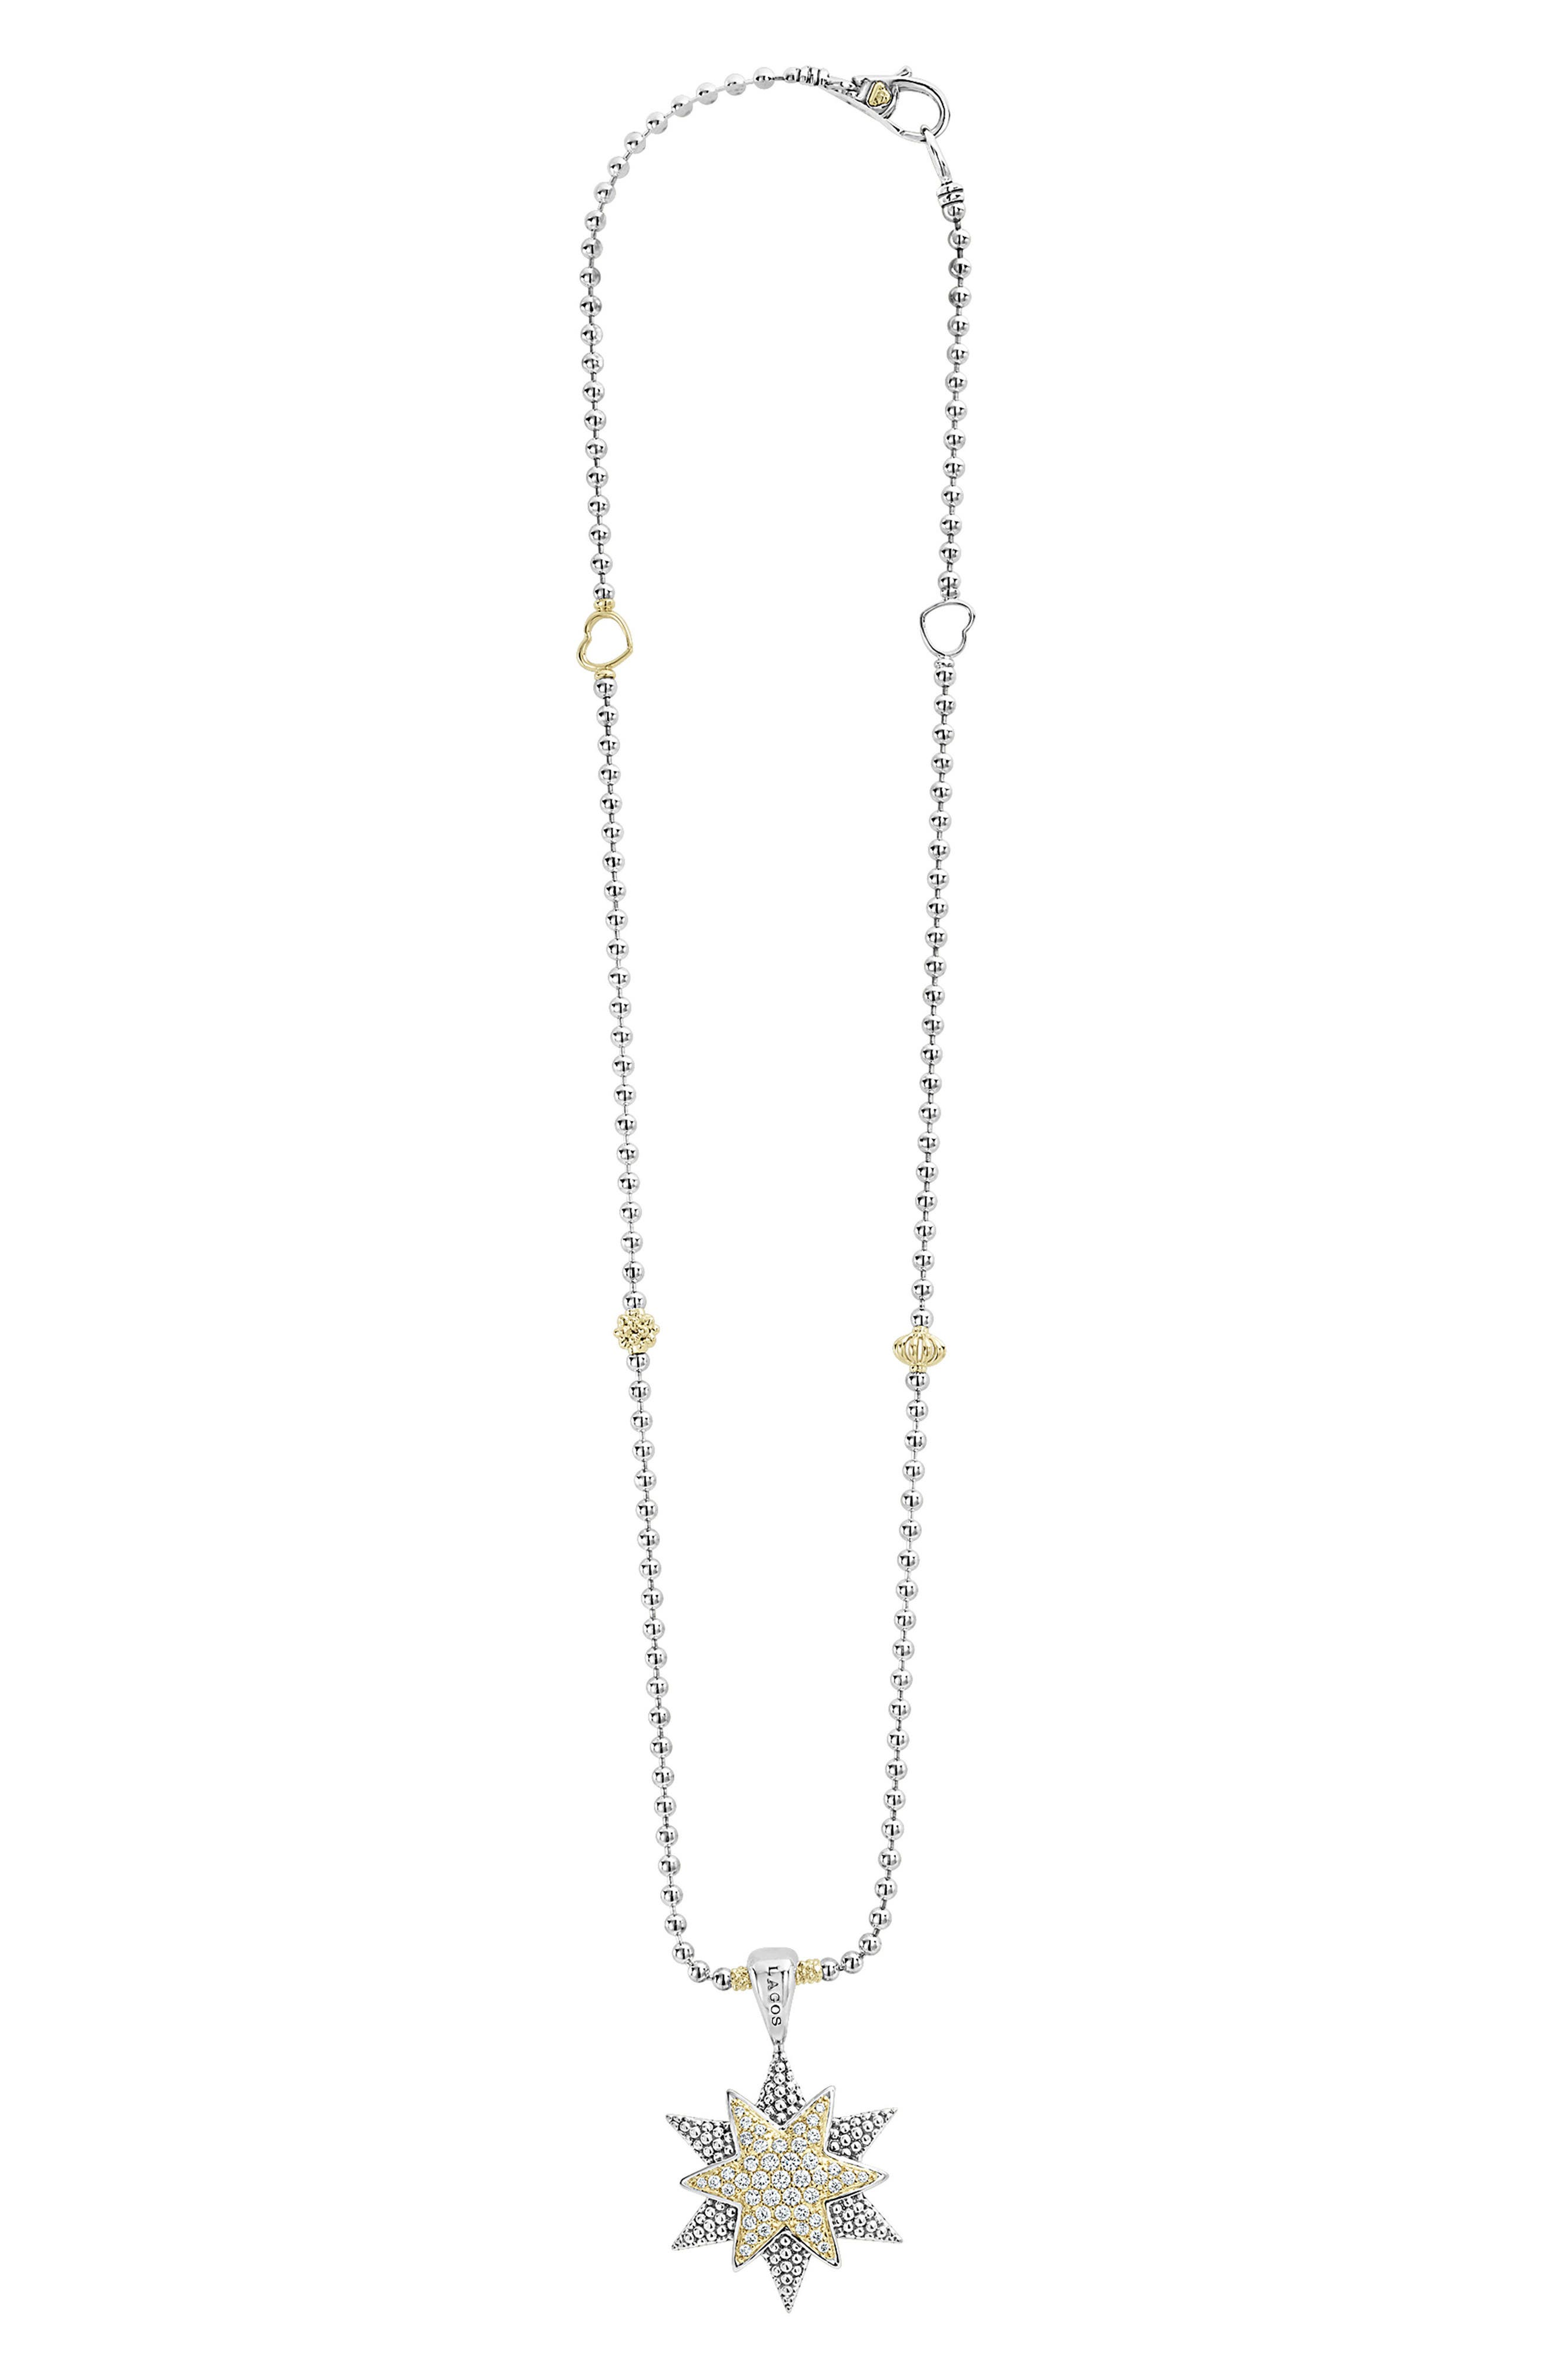 Alternate Image 1 Selected - LAGOS North Star Large Diamond Pendant Necklace